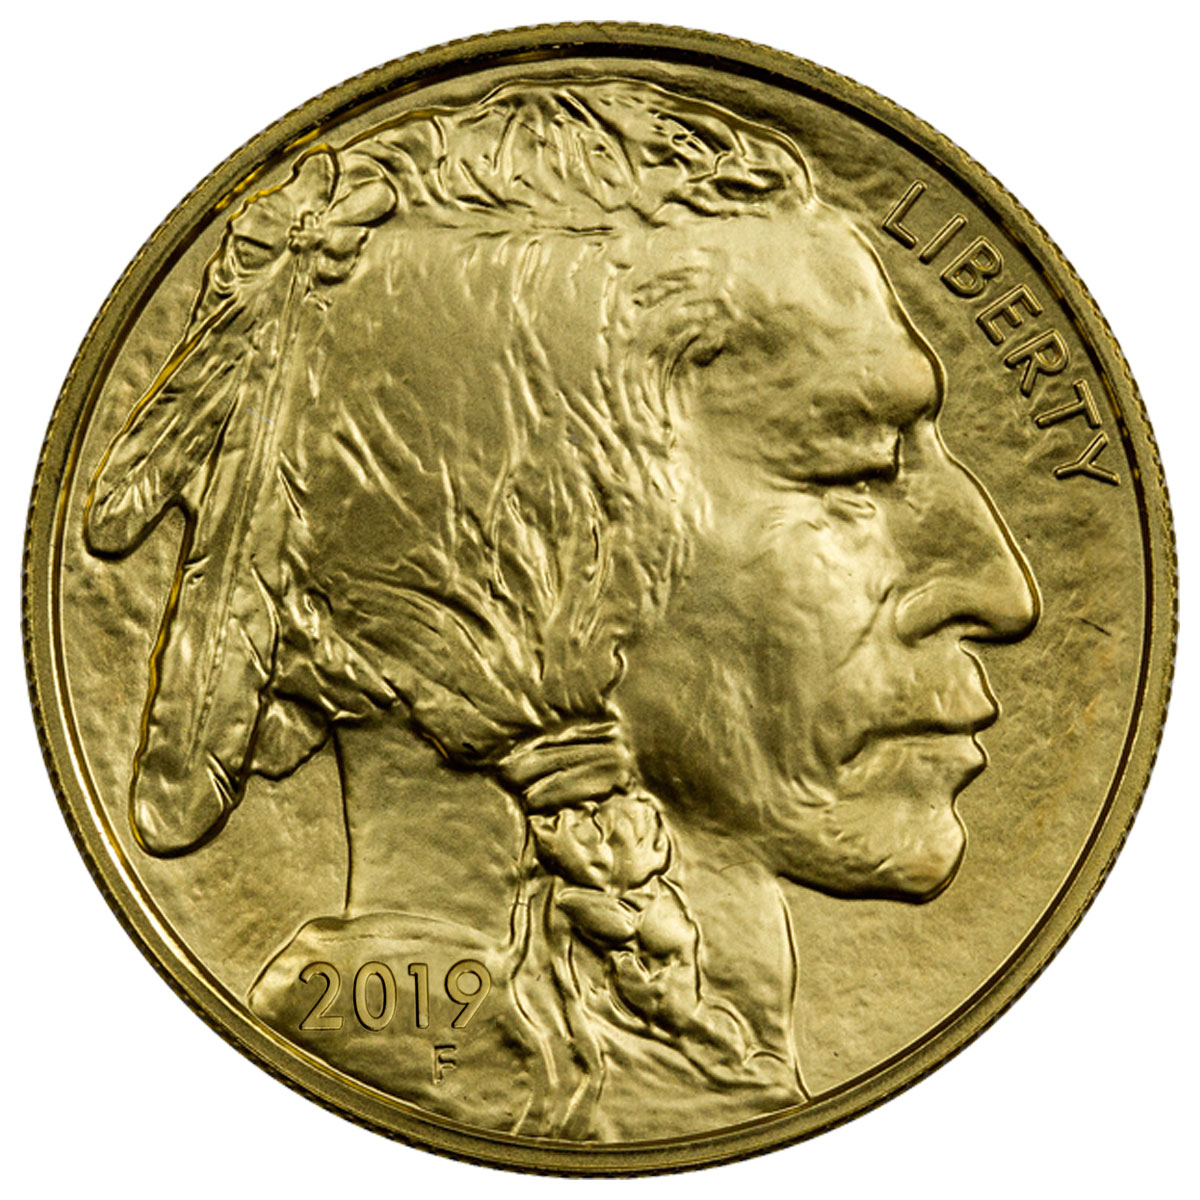 2019 1 oz Gold Buffalo $50 Coin GEM BU